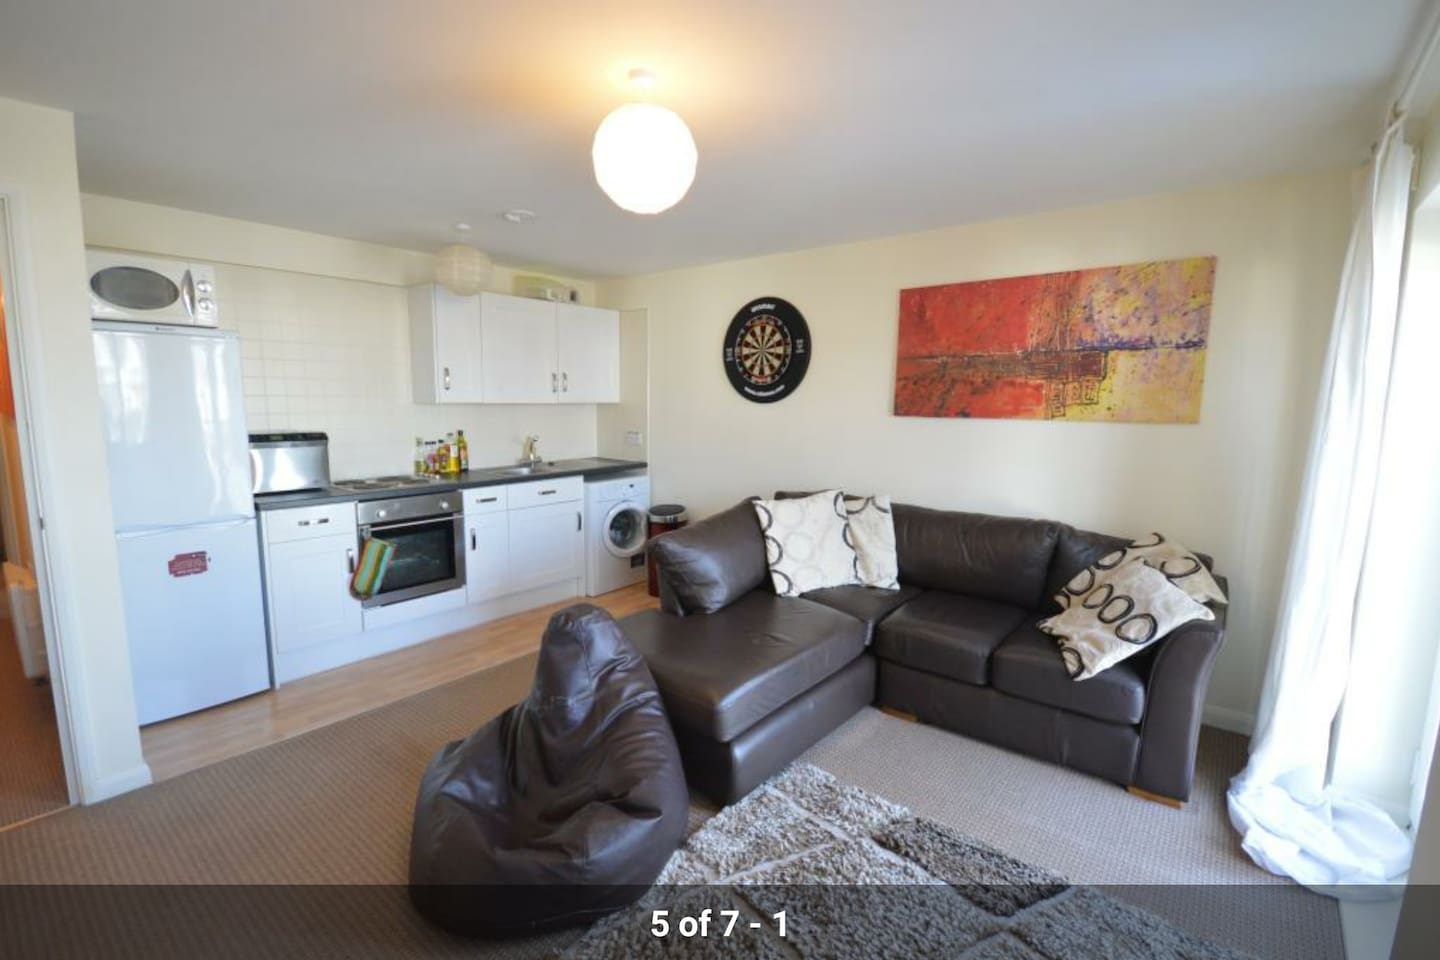 Lounge and Kitchen. Includes fridge, freezer, washing machine and oven. Sadly the dart board is no longer there!